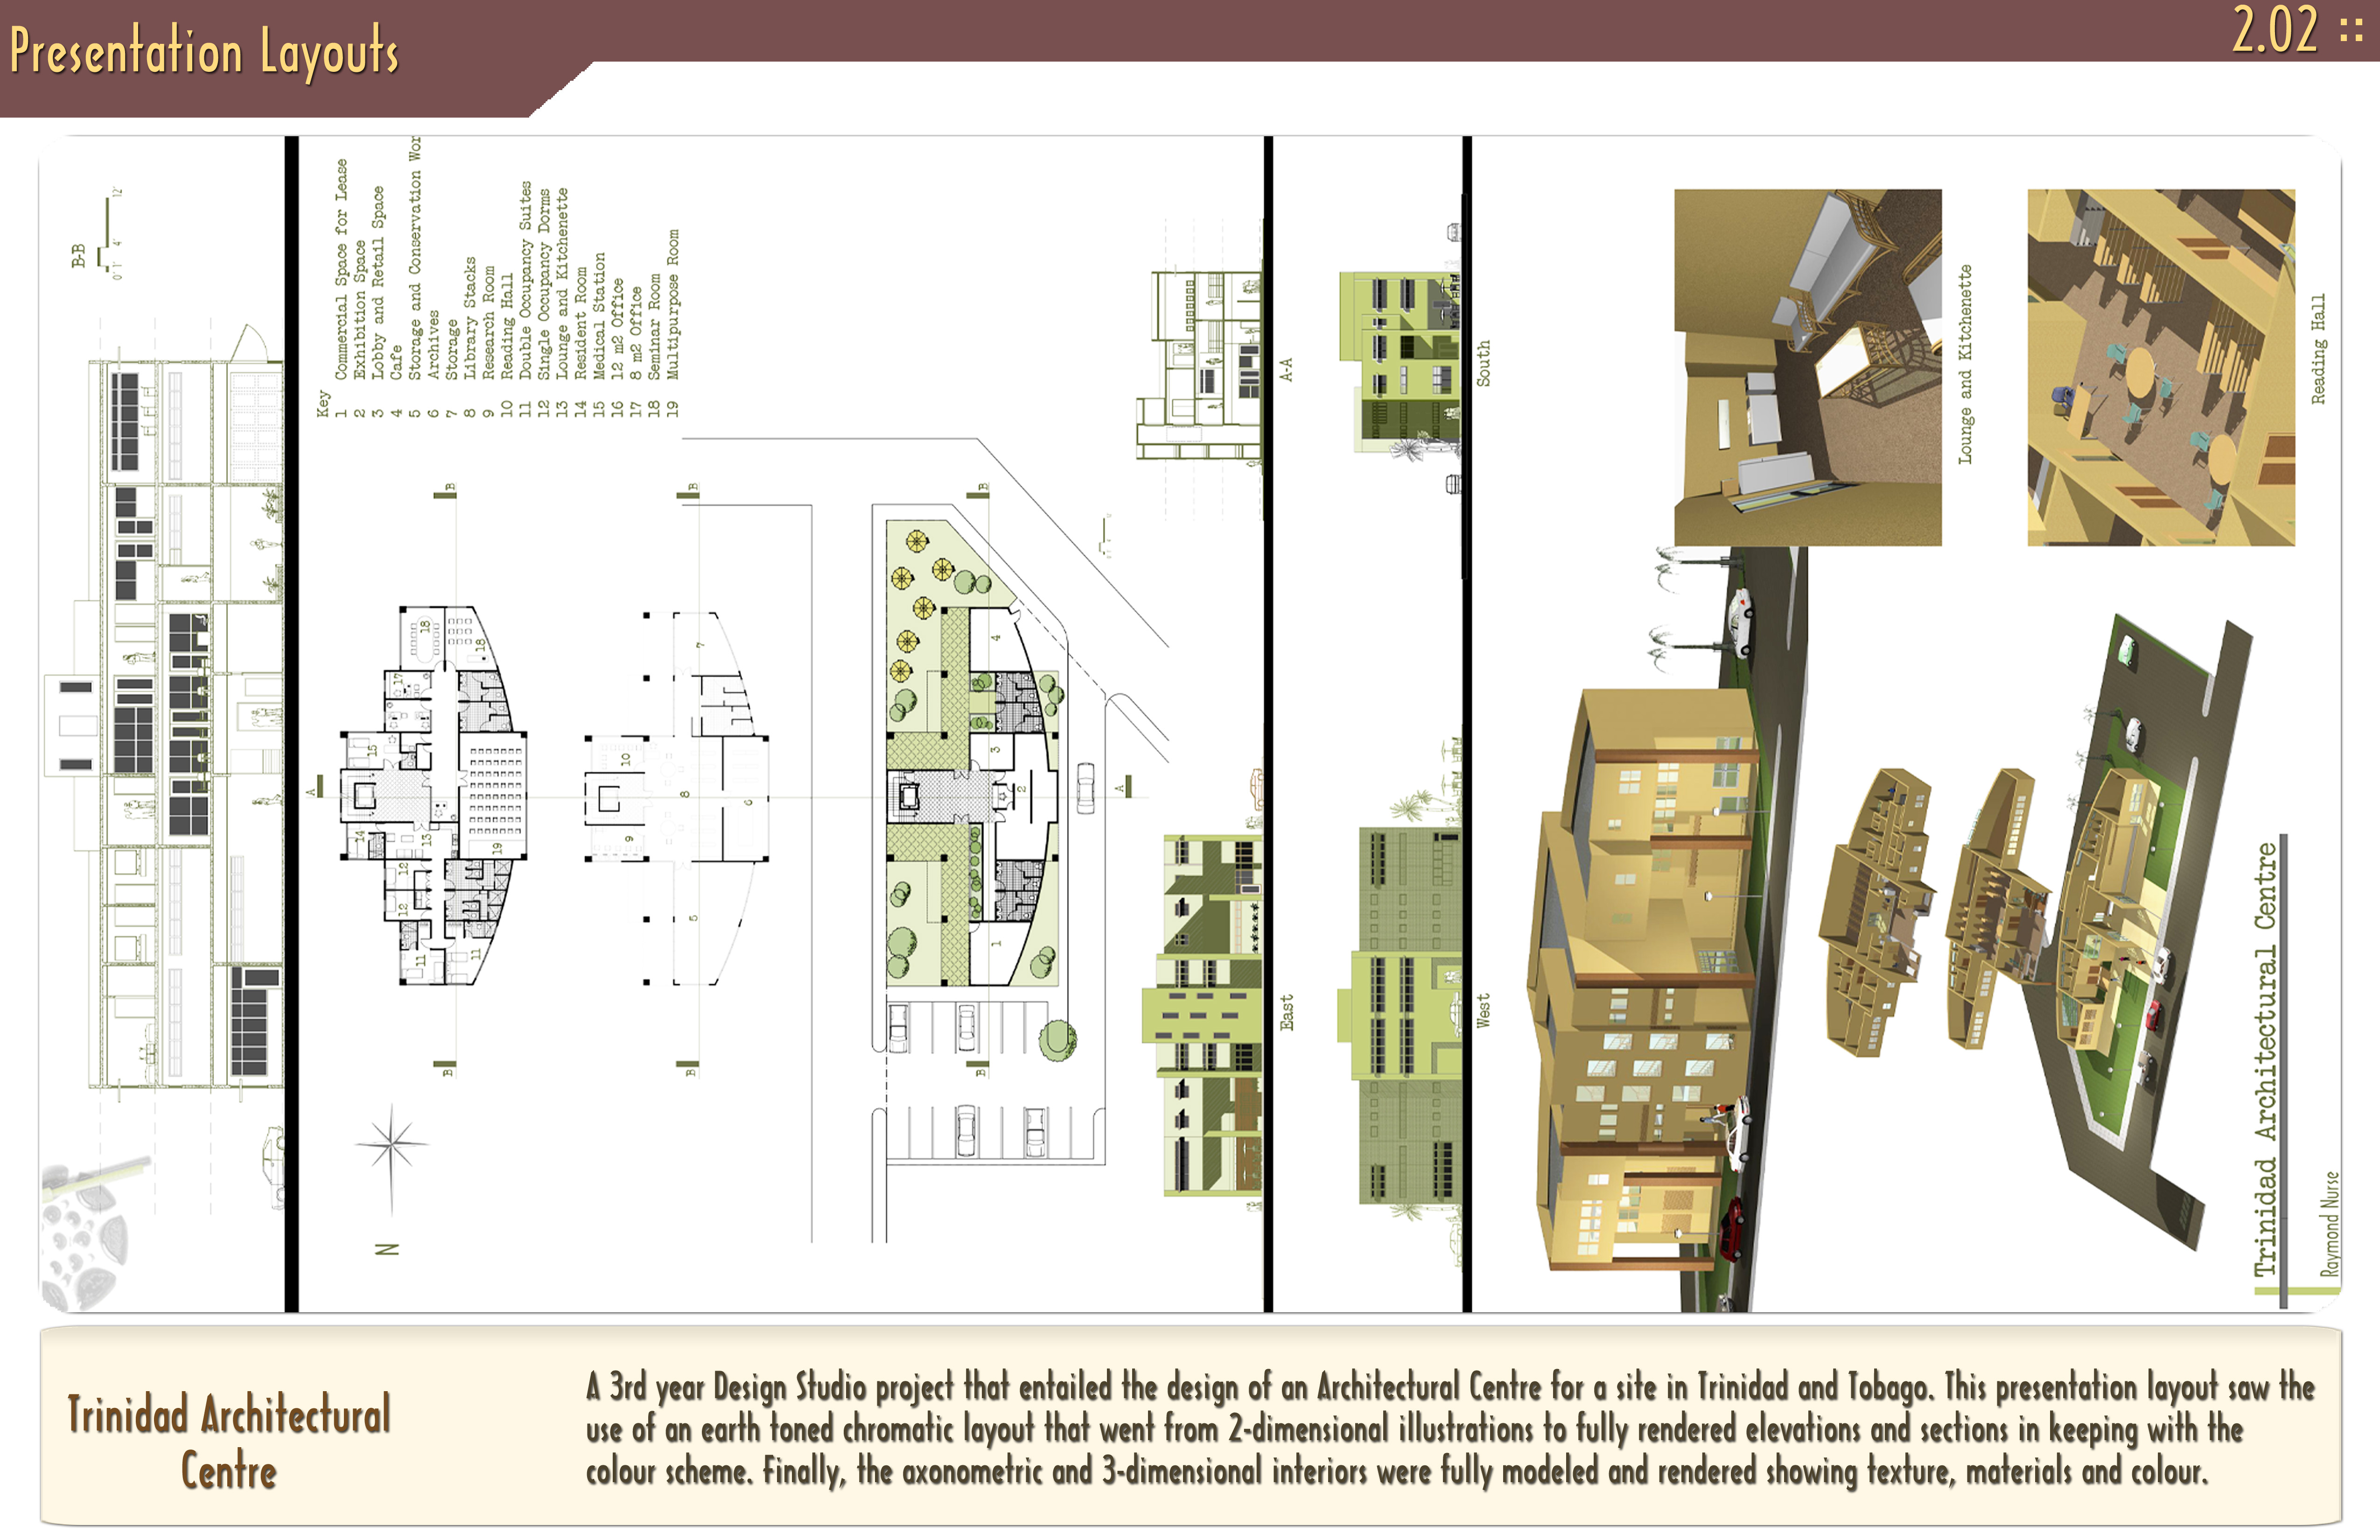 layouts by raymond nurse at coroflot com 1000 images about architectural layouts on pinterest